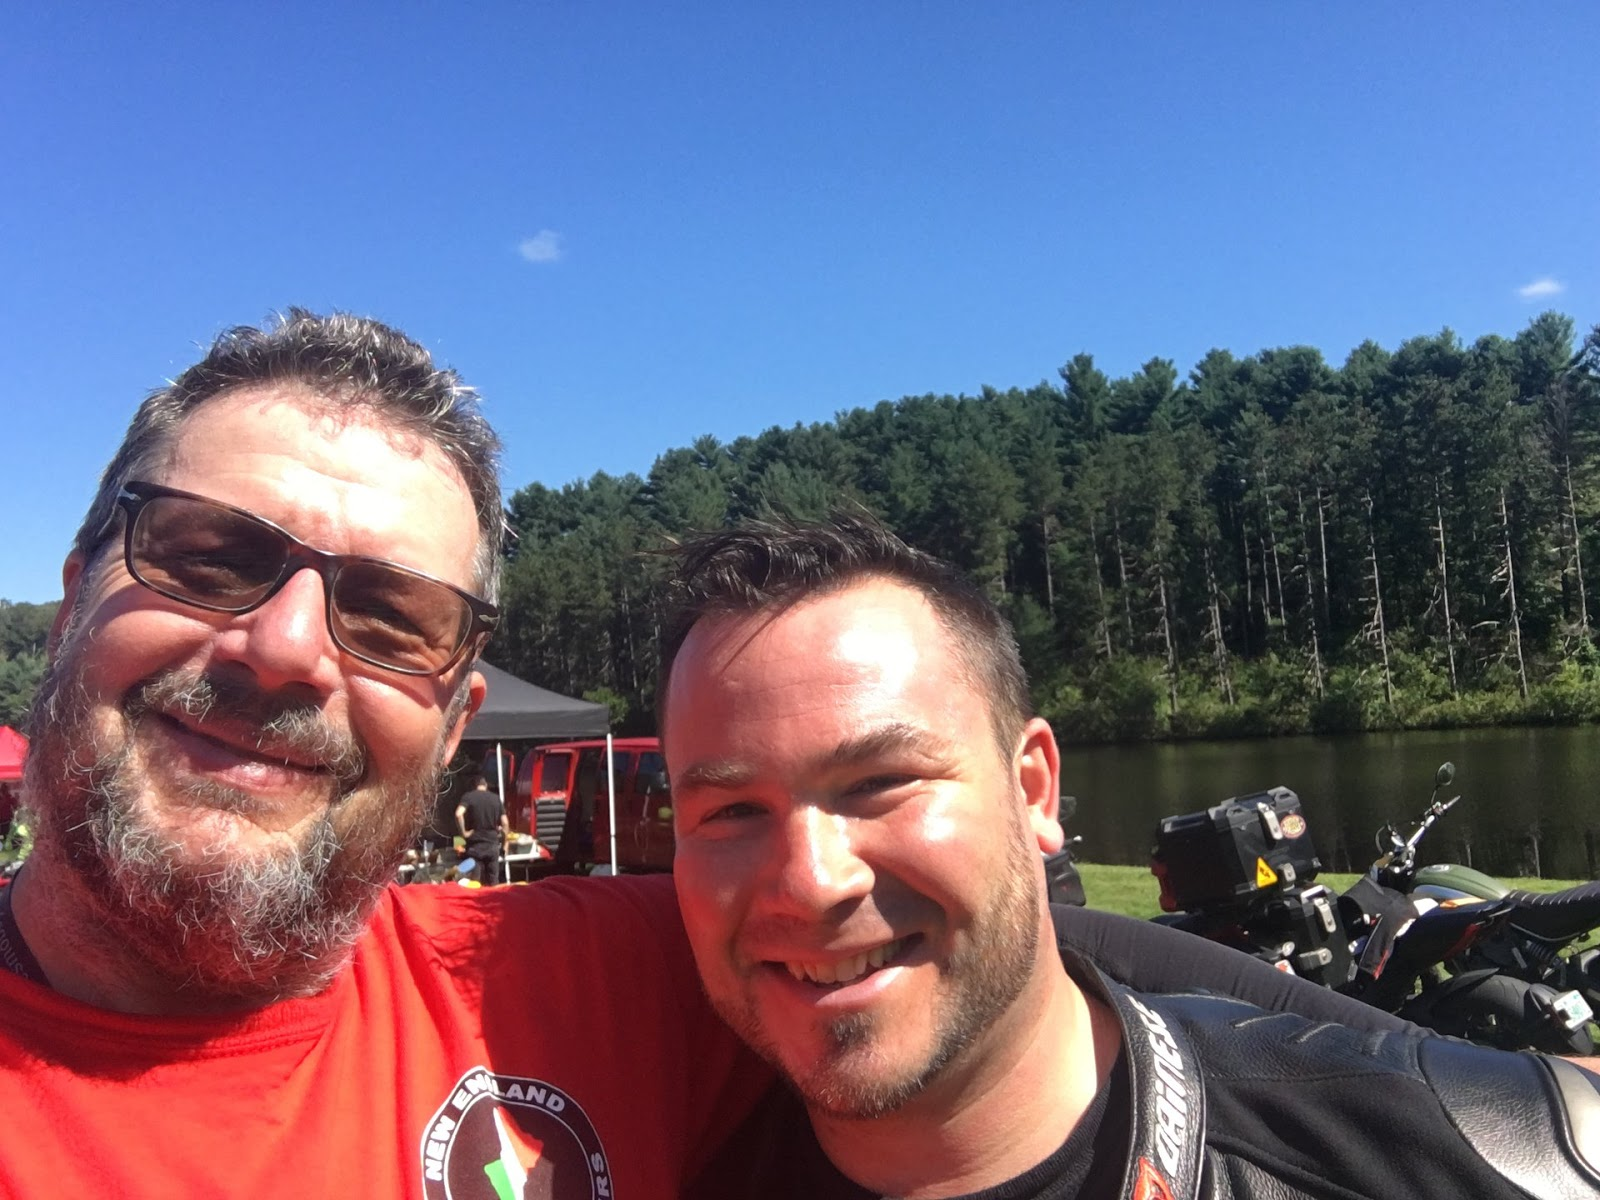 Tigh Loughhead of Gotham Ducati and Ted Gooch of NEDOC New England Desmo